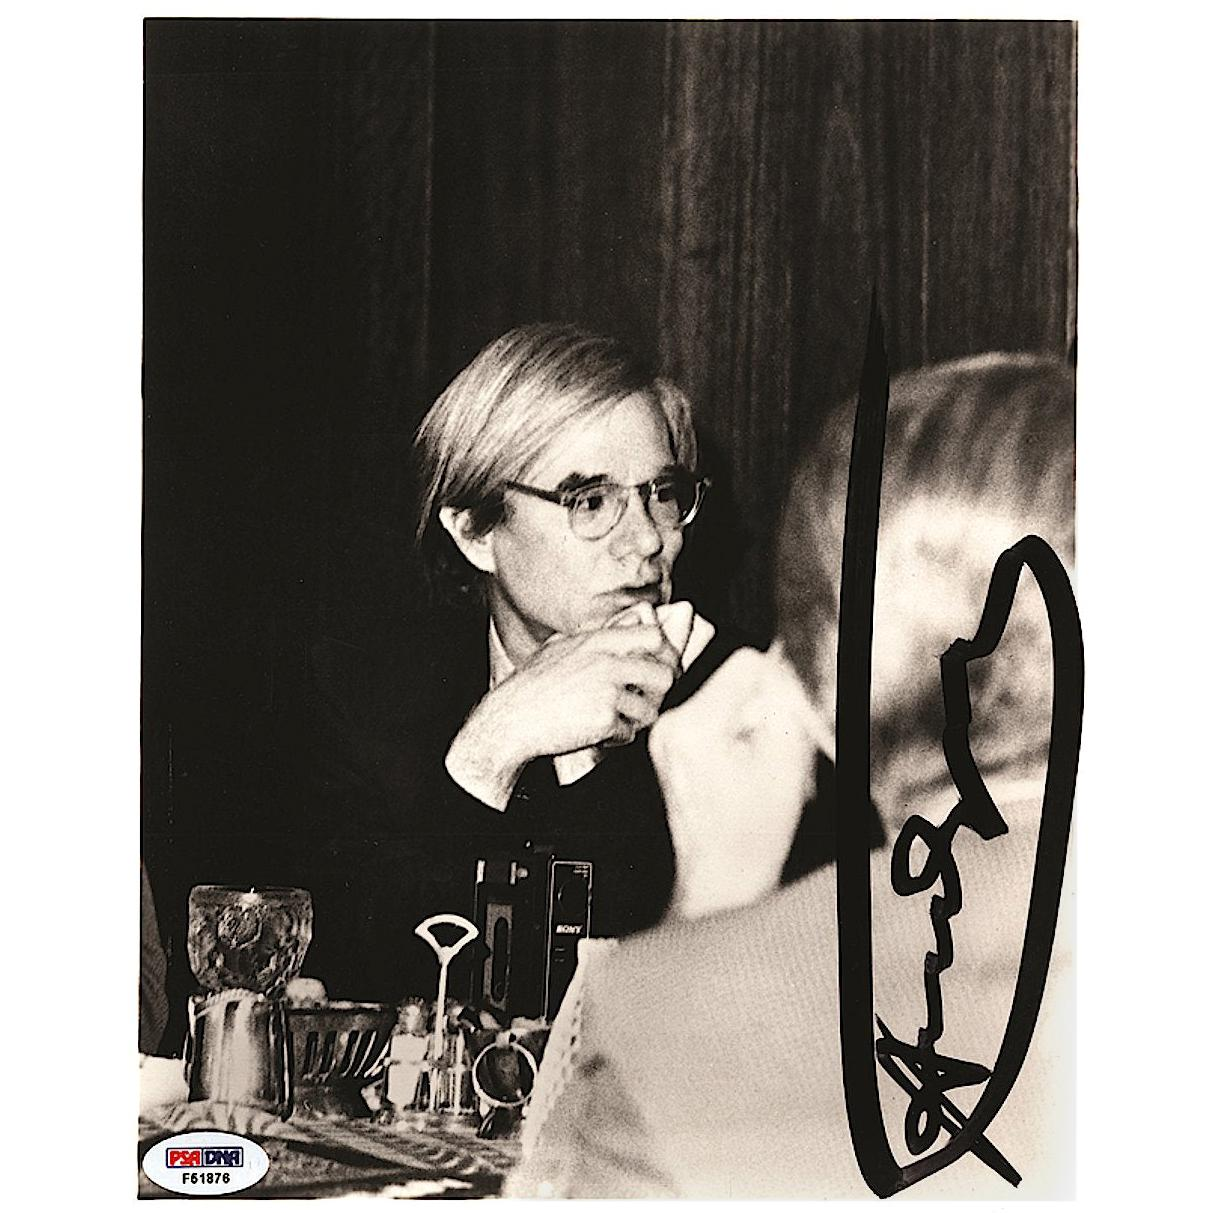 Andy Warhol Original Signed Black and White Photograph, 20th Century